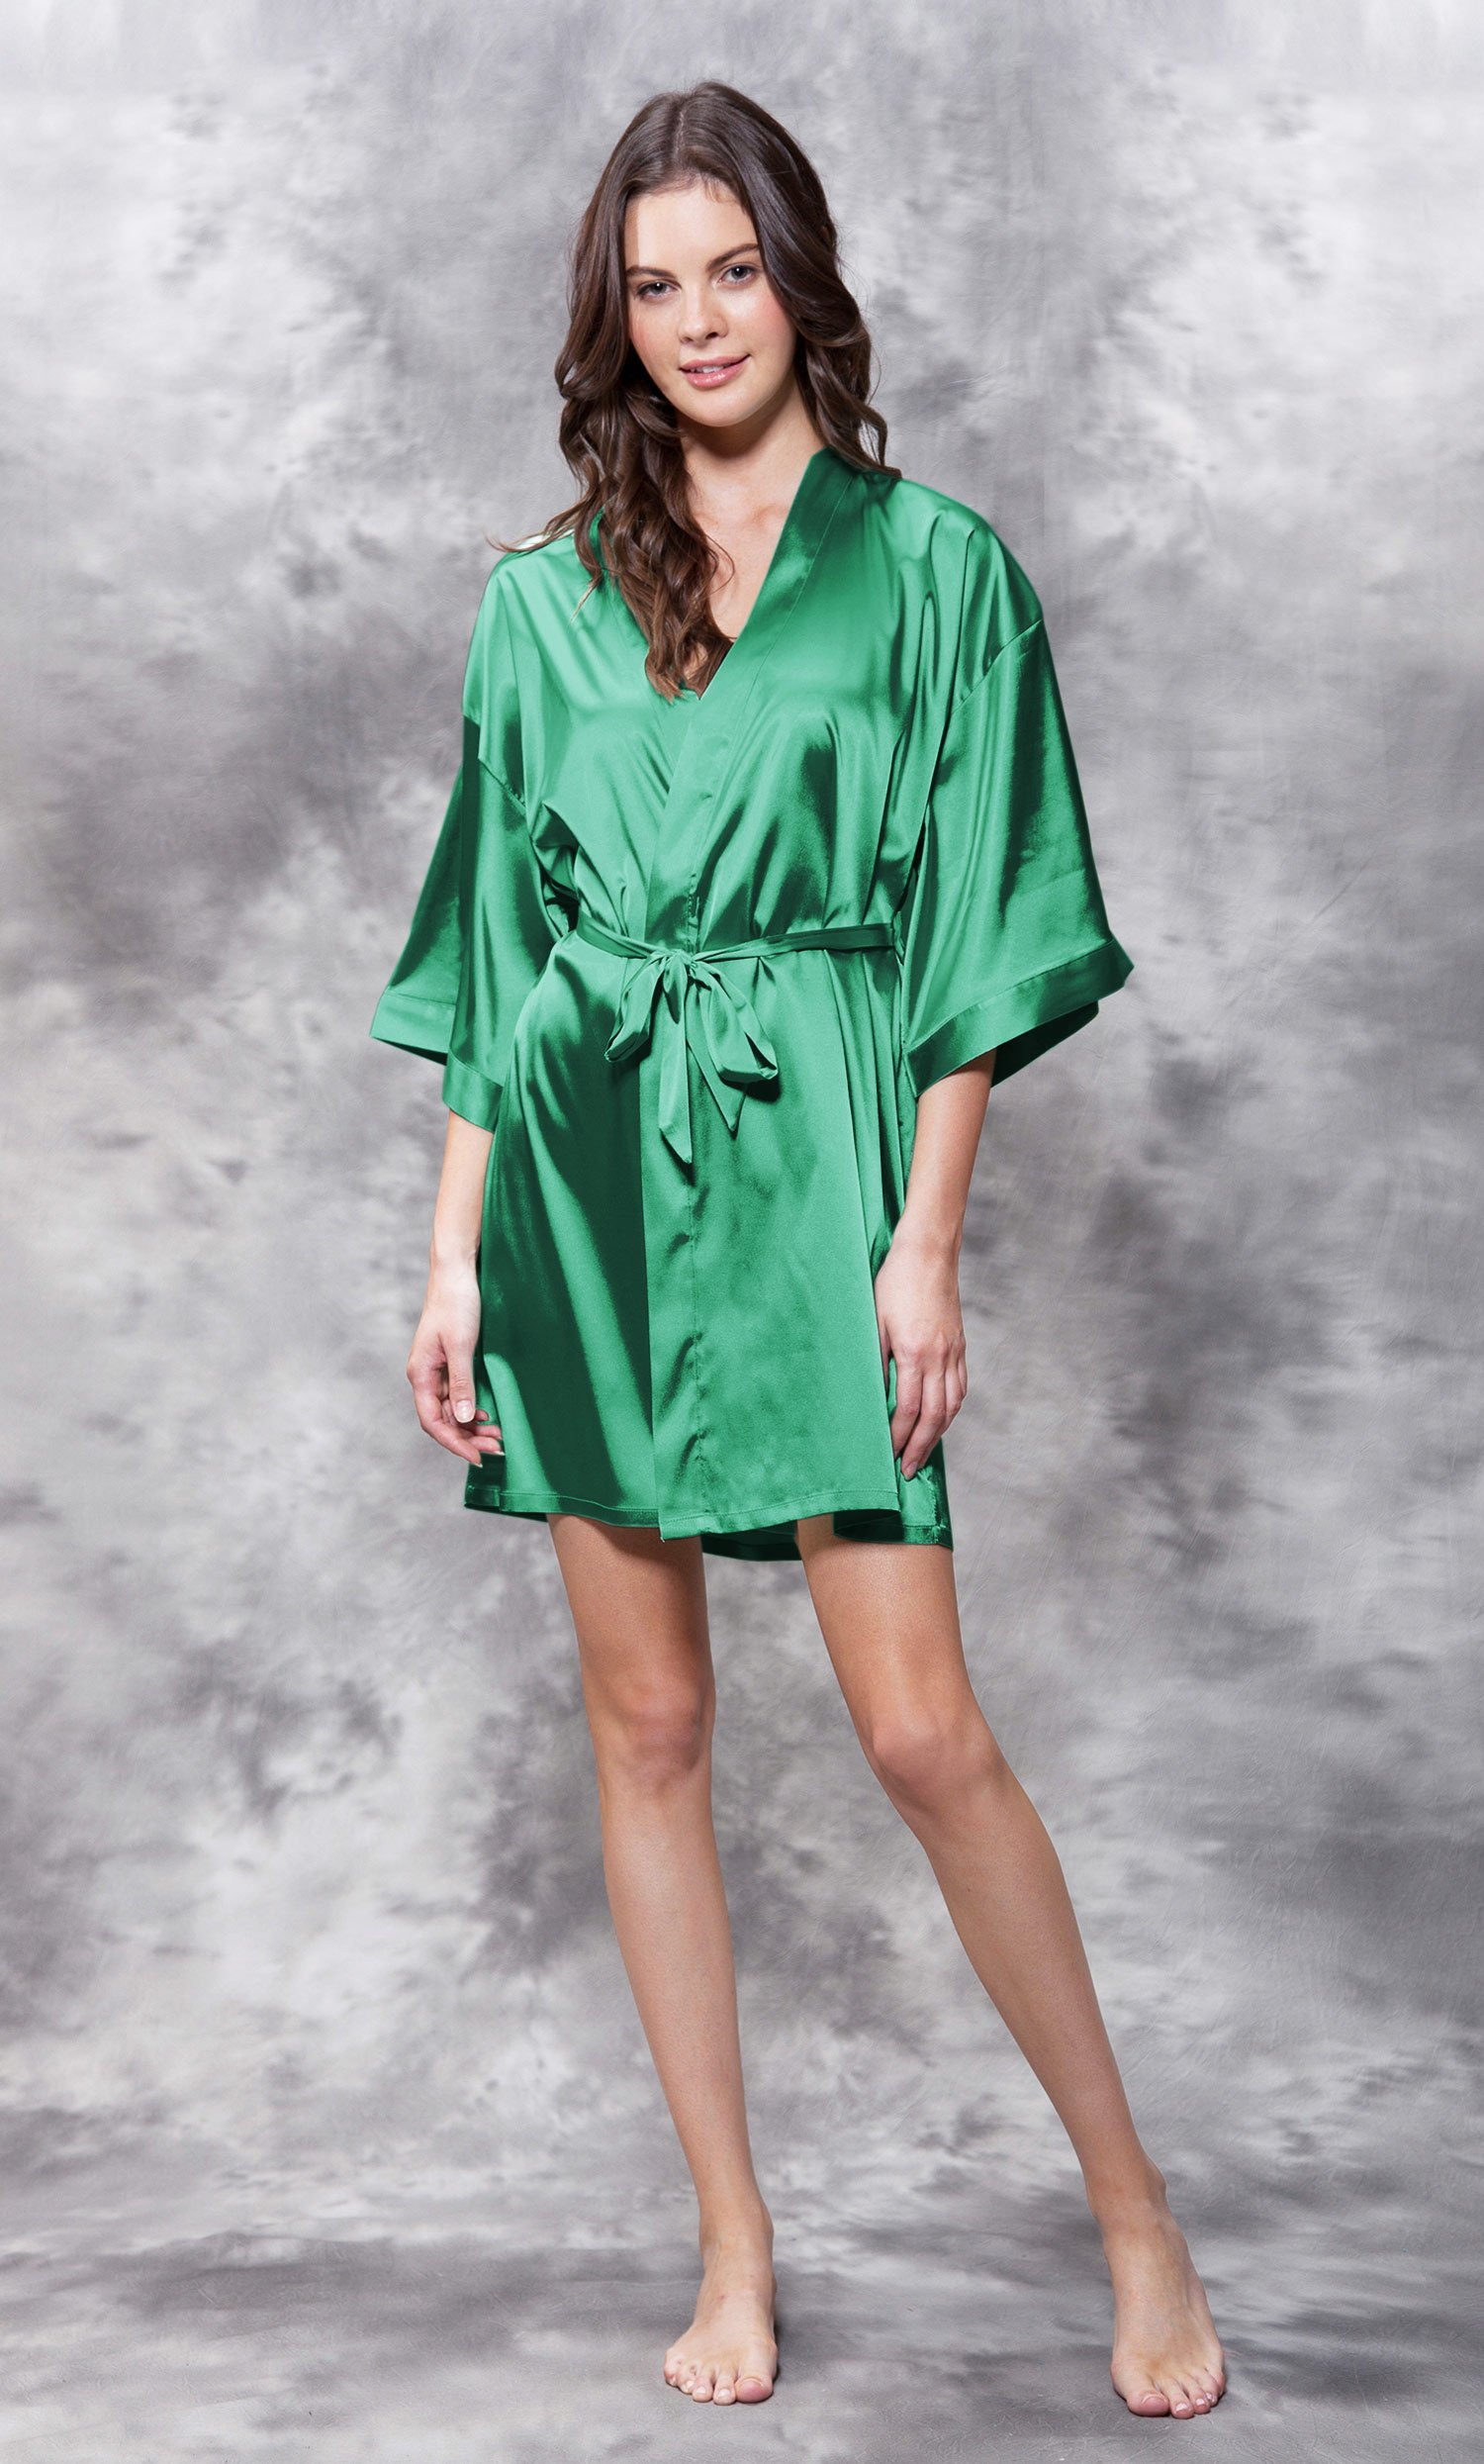 Maid of Honor Clear Rhinestone Satin Kimono Lush Meadow Green Short Robe-Robemart.com